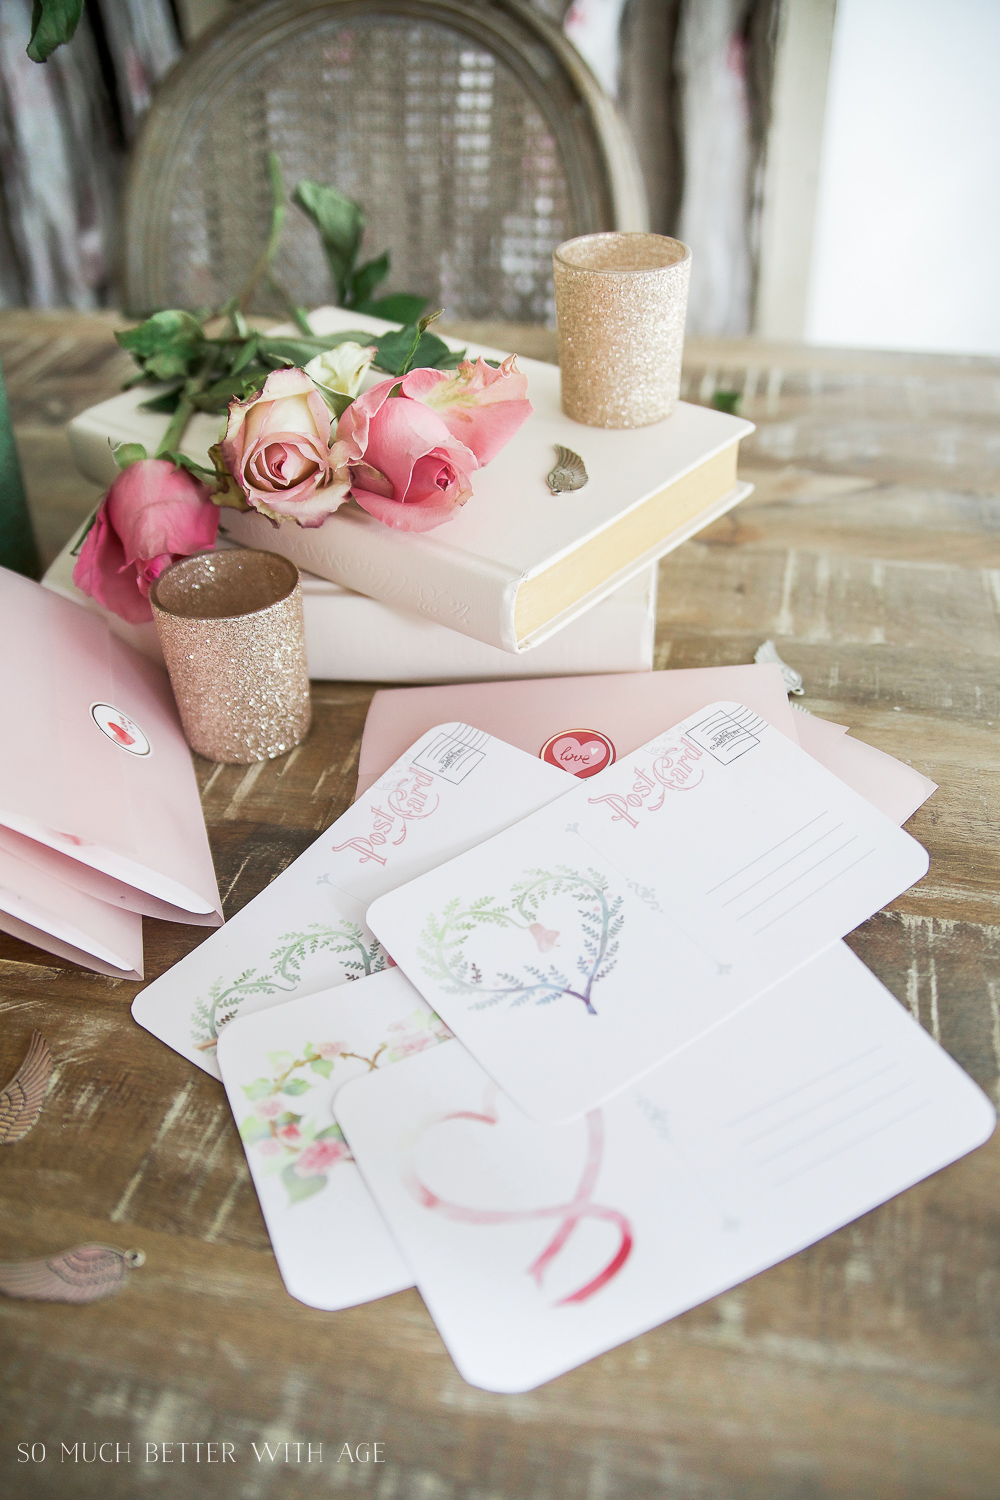 Valentine's Day Free Postcard Printables/Download with DIY Vellum Envelope / candle holders and envelopes on table - So Much Better With Age